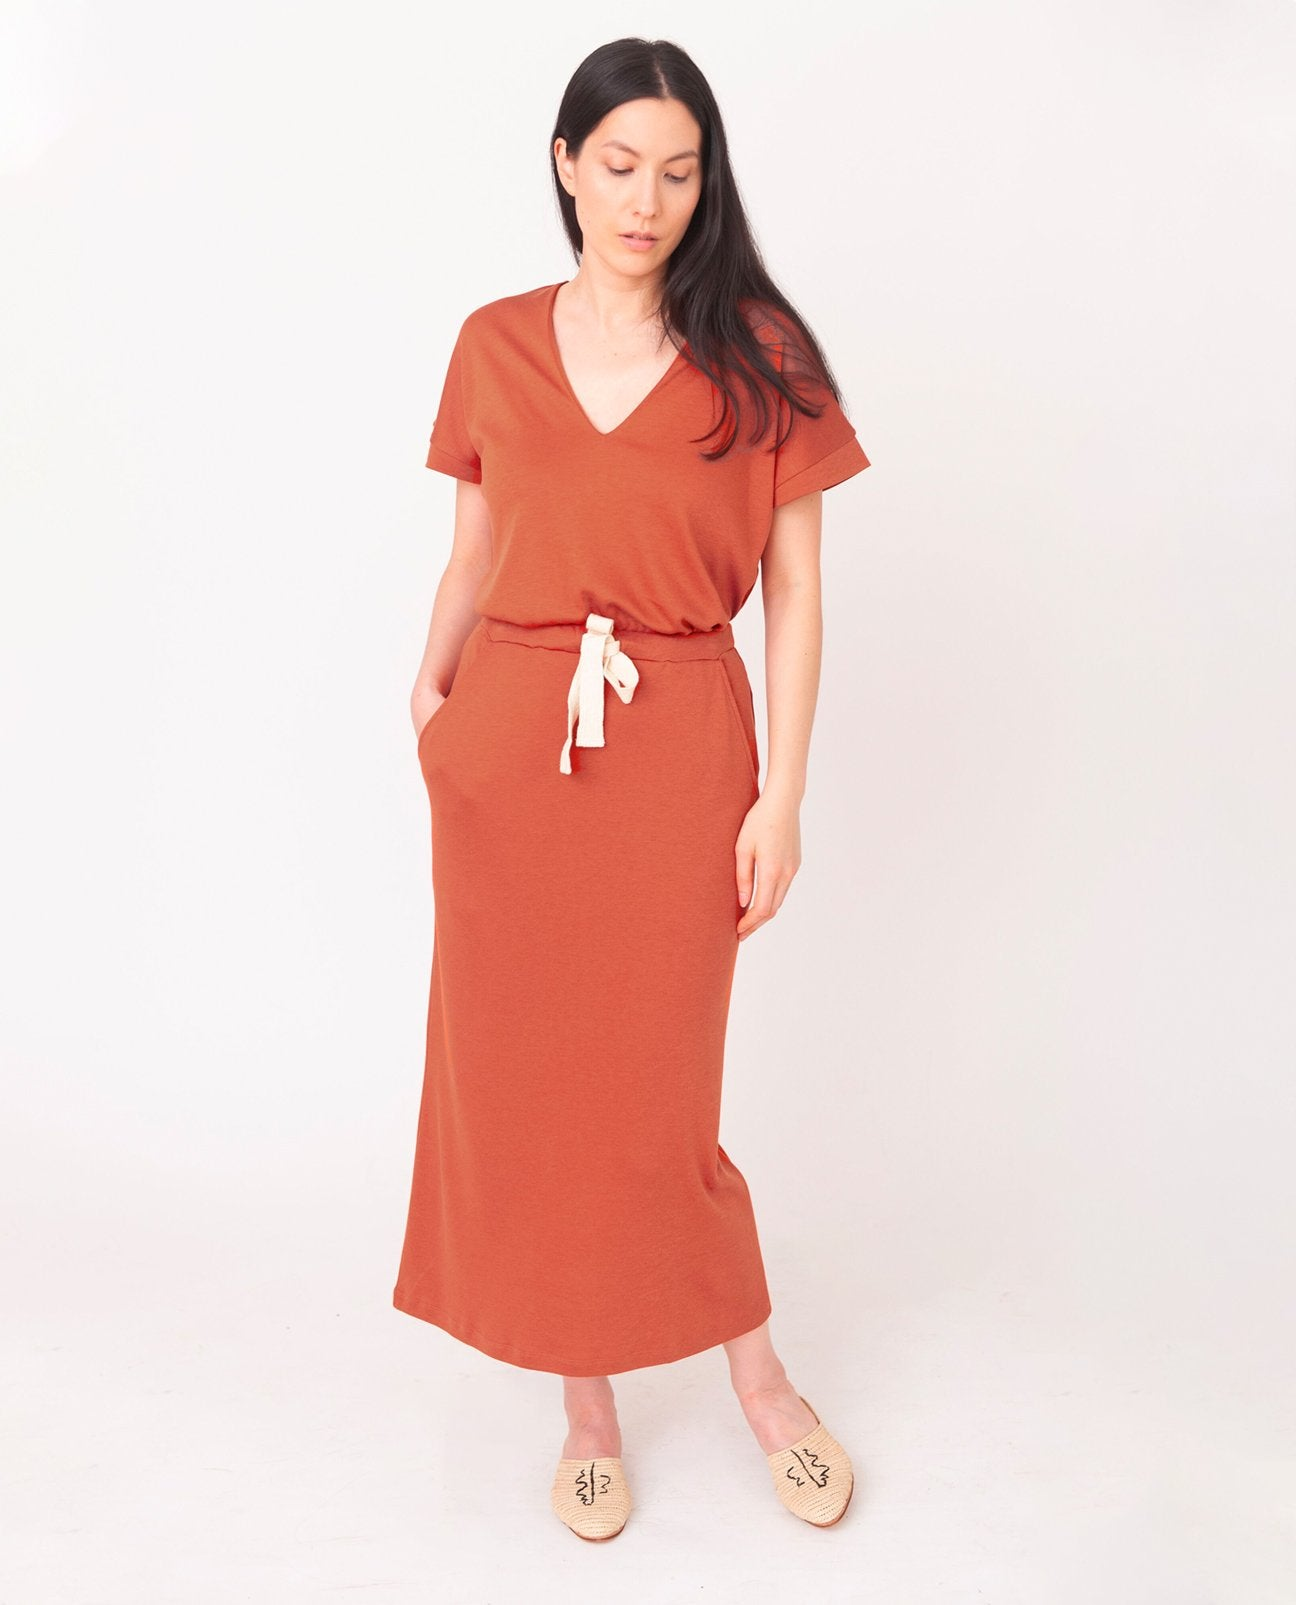 ANA-LOU Lyocell Skirt in Madder